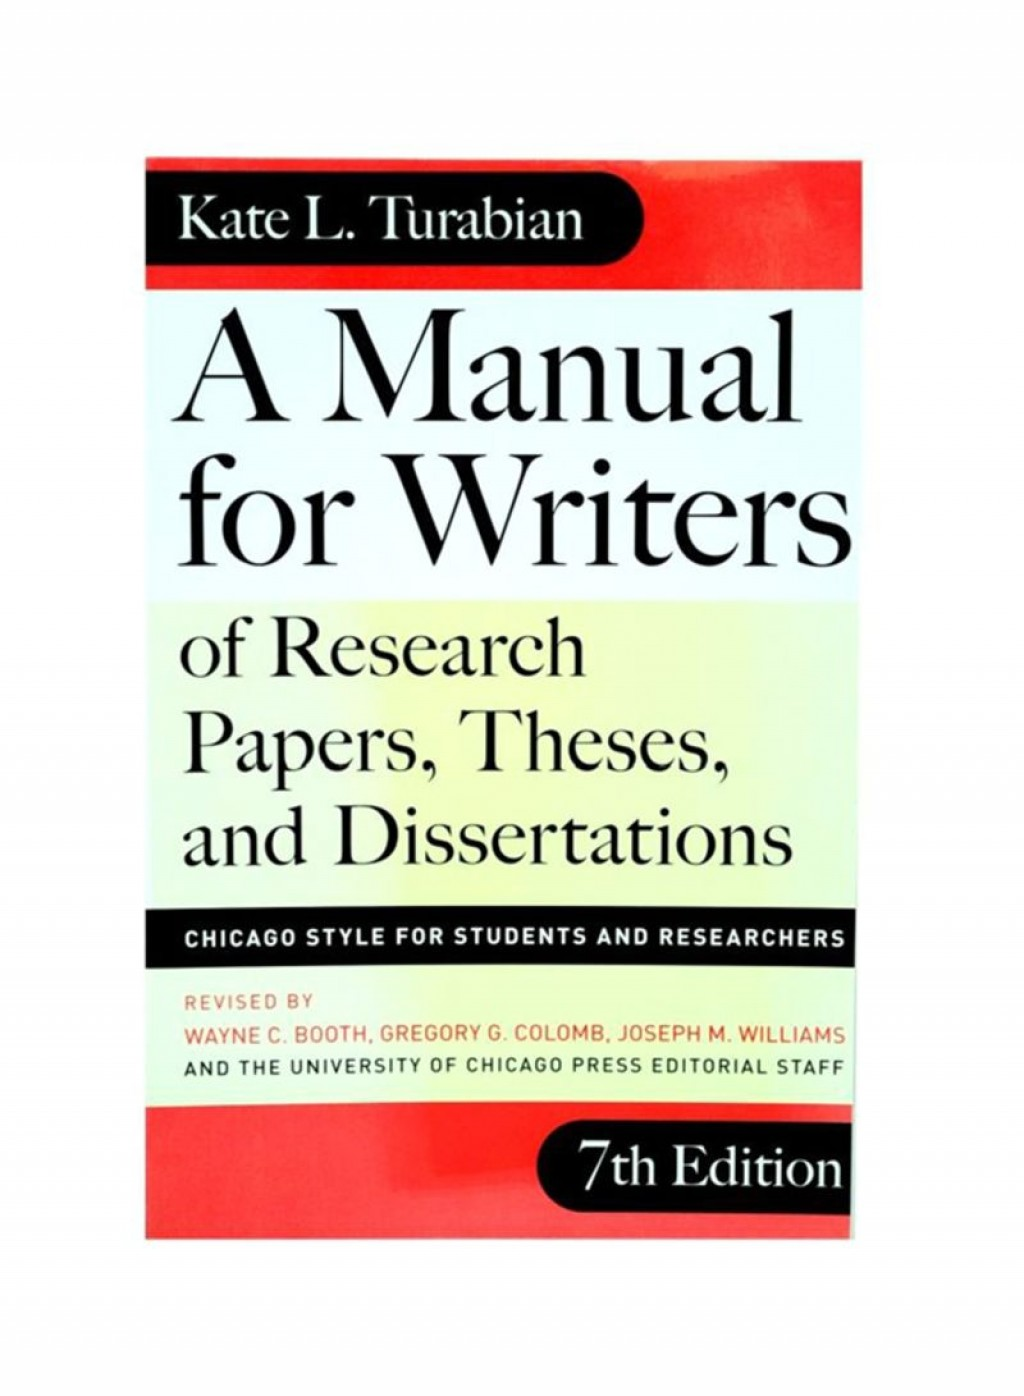 021 Research Paper N21270079a 1 Manual For Writers Of Papers Theses And Magnificent Dissertations A 8th Pdf Amazon Large